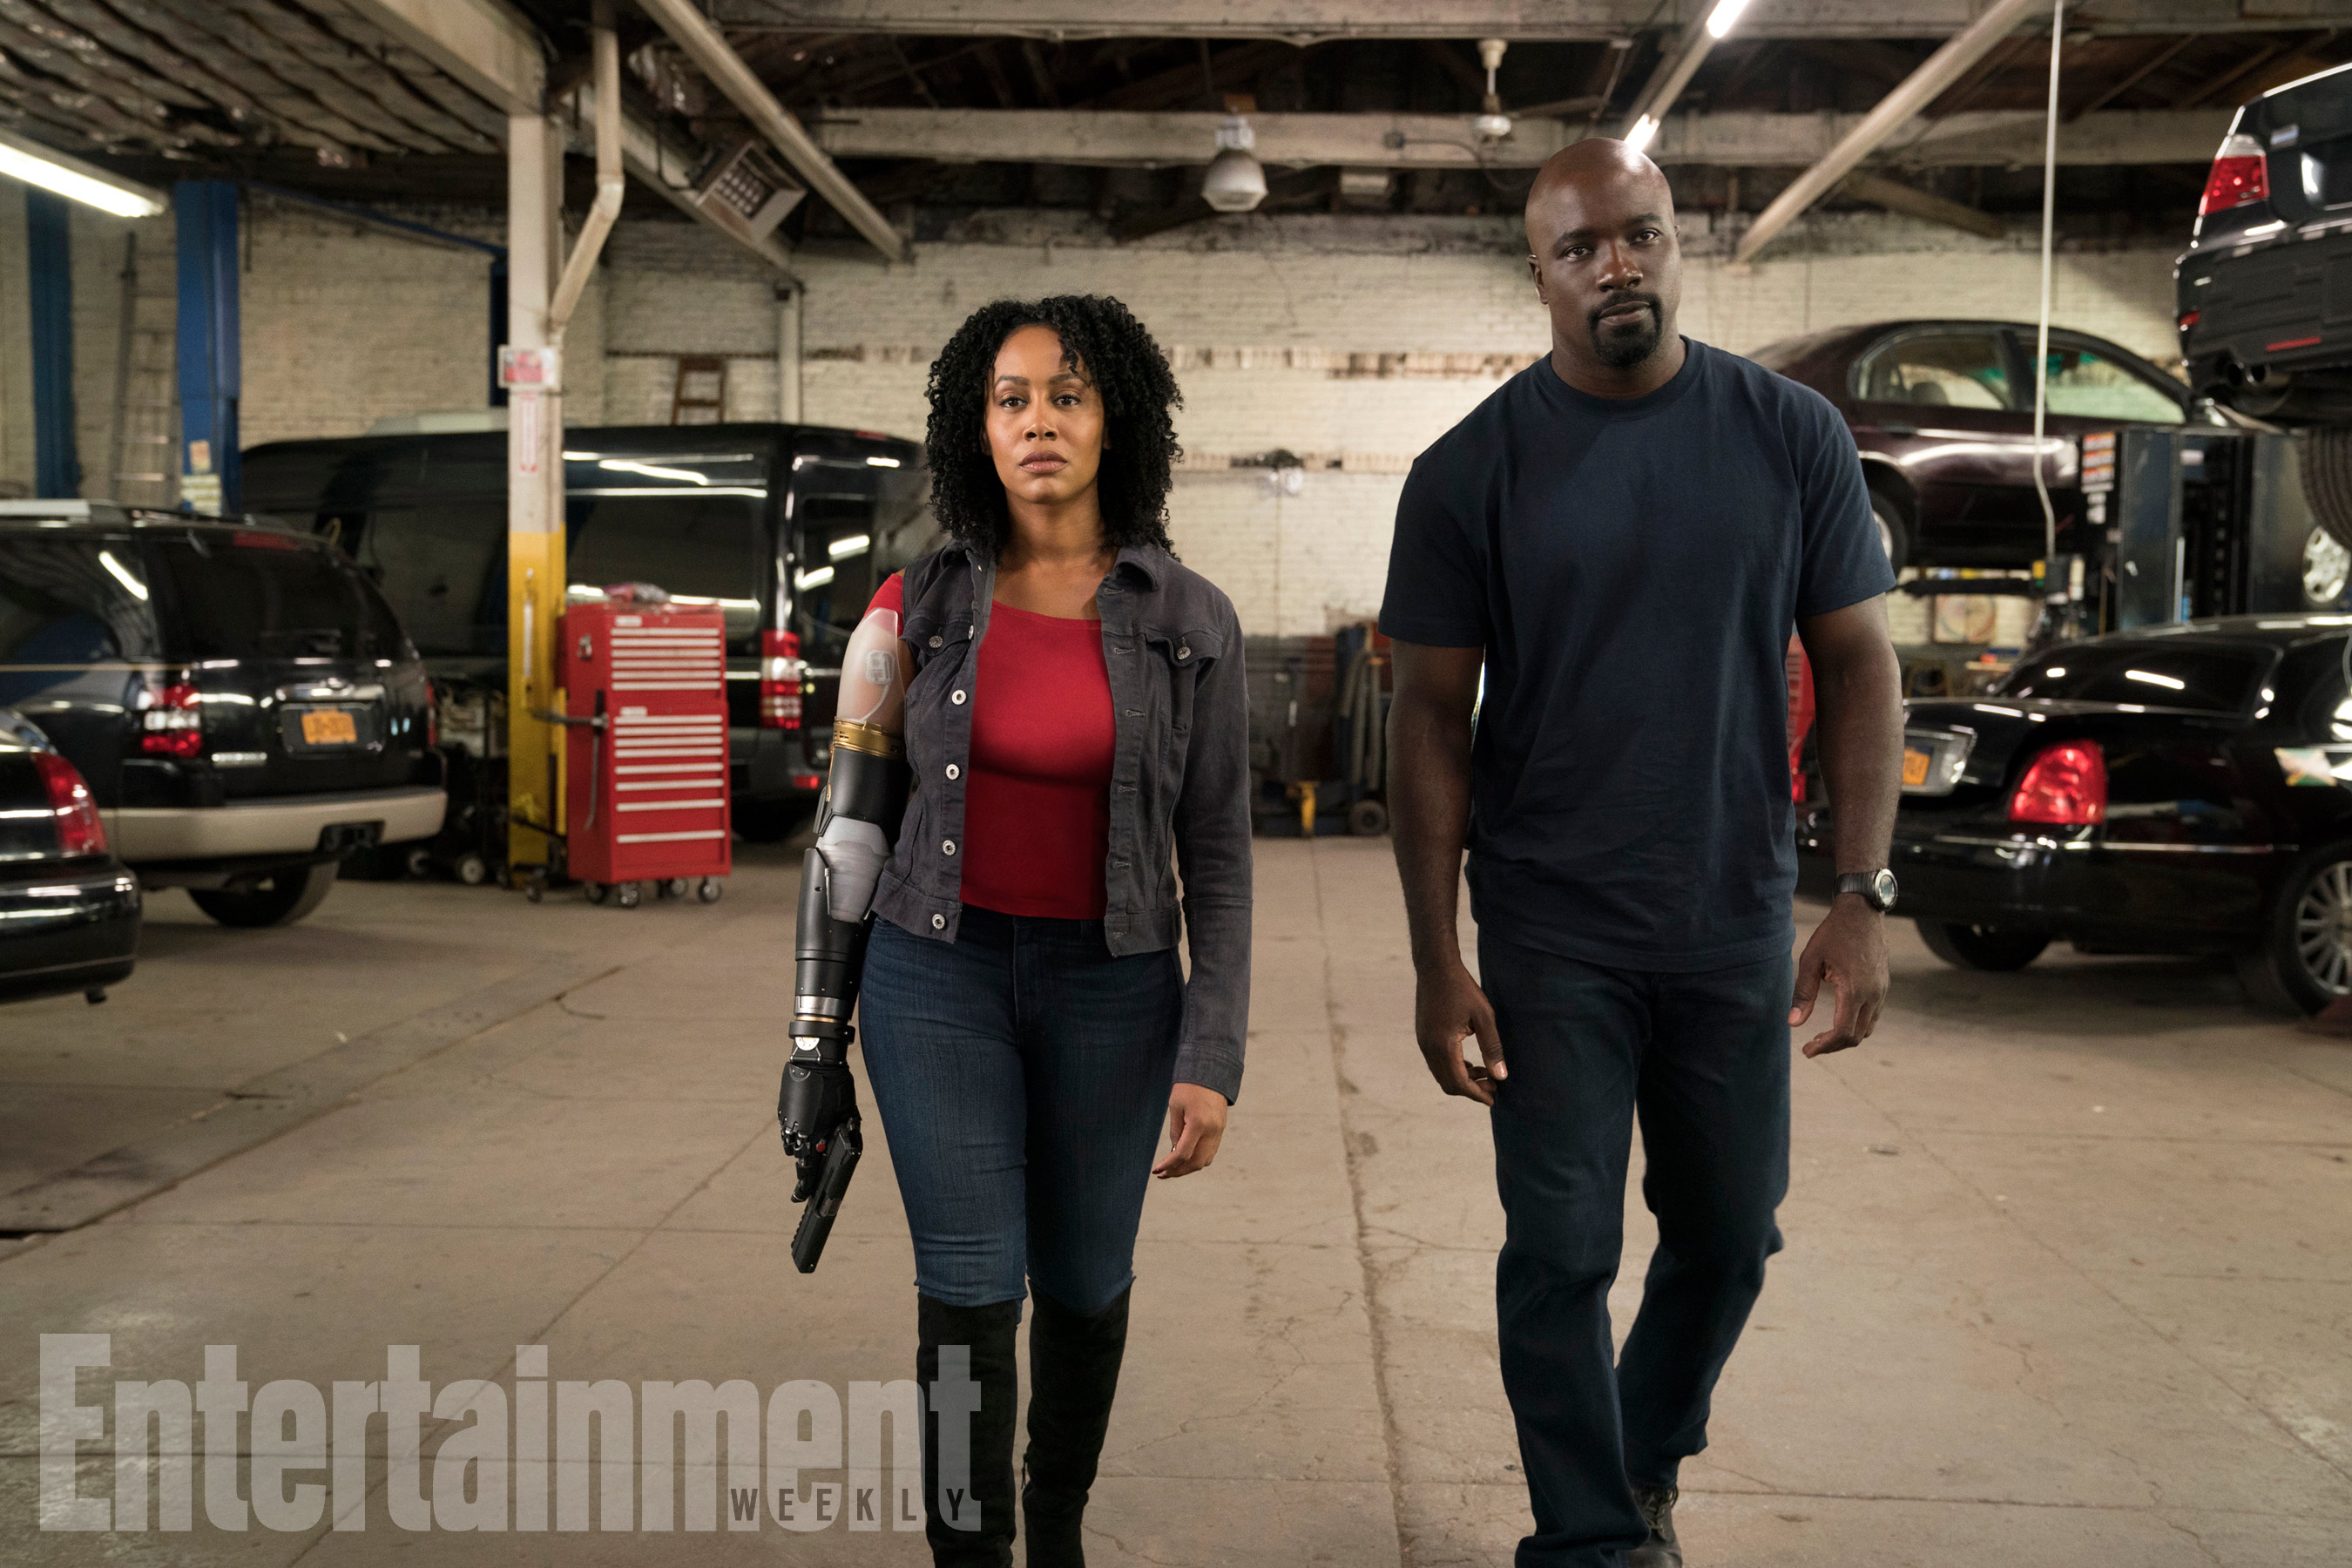 Luke Cage Season 2 - Simone Missick and Mike Colter